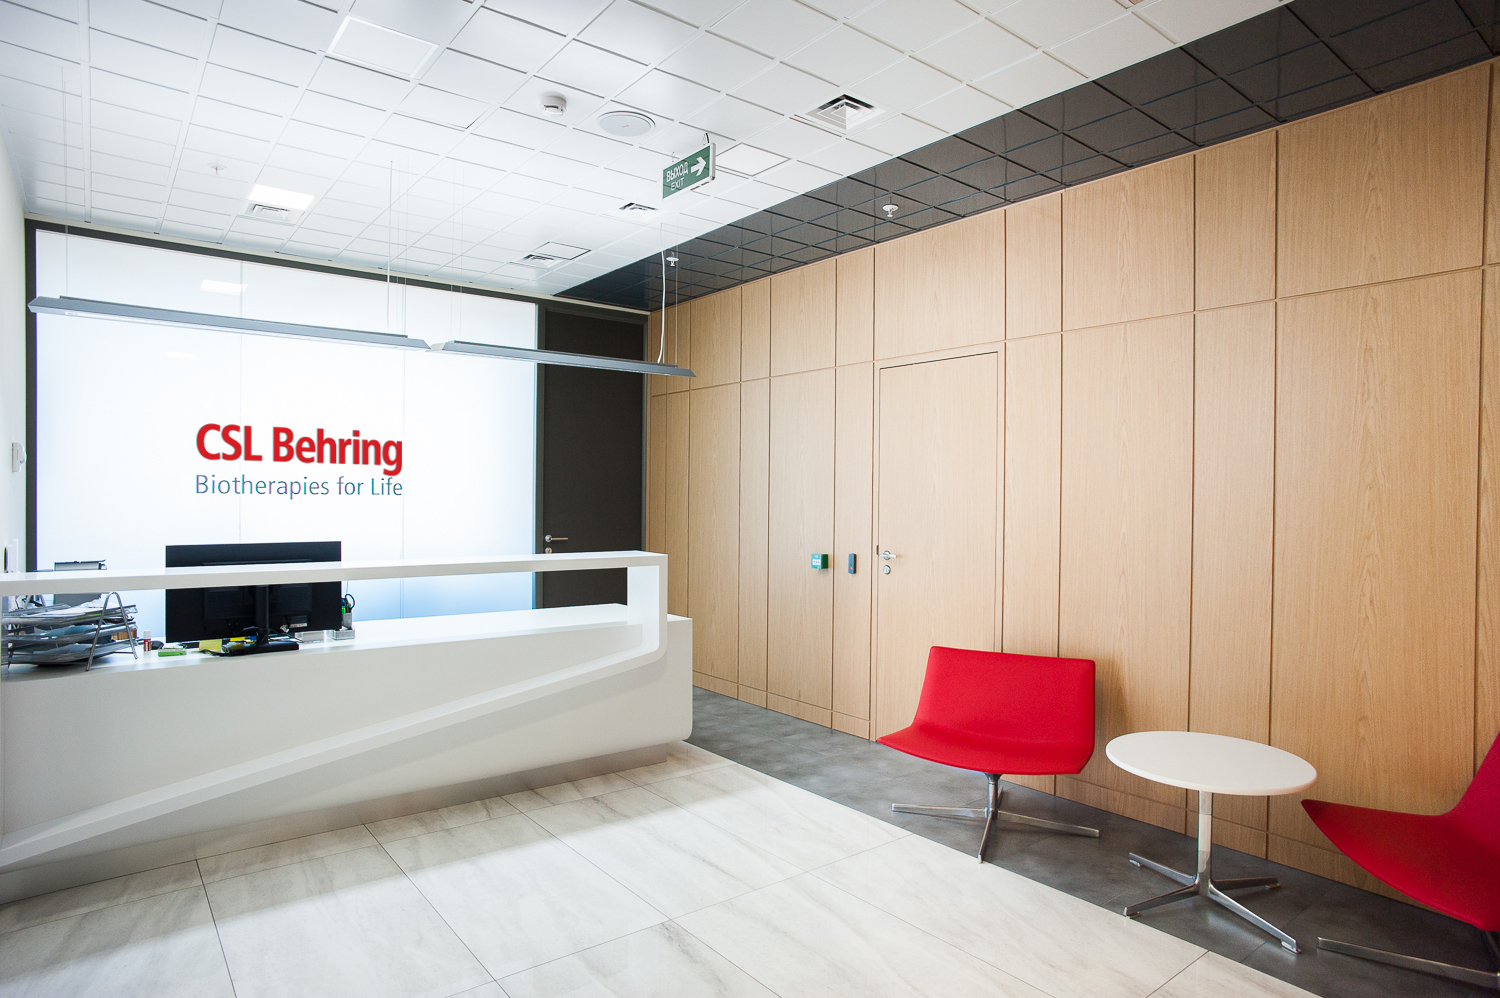 Photo NAYADA for the office of the CSL Behring Pharmaceutical Company